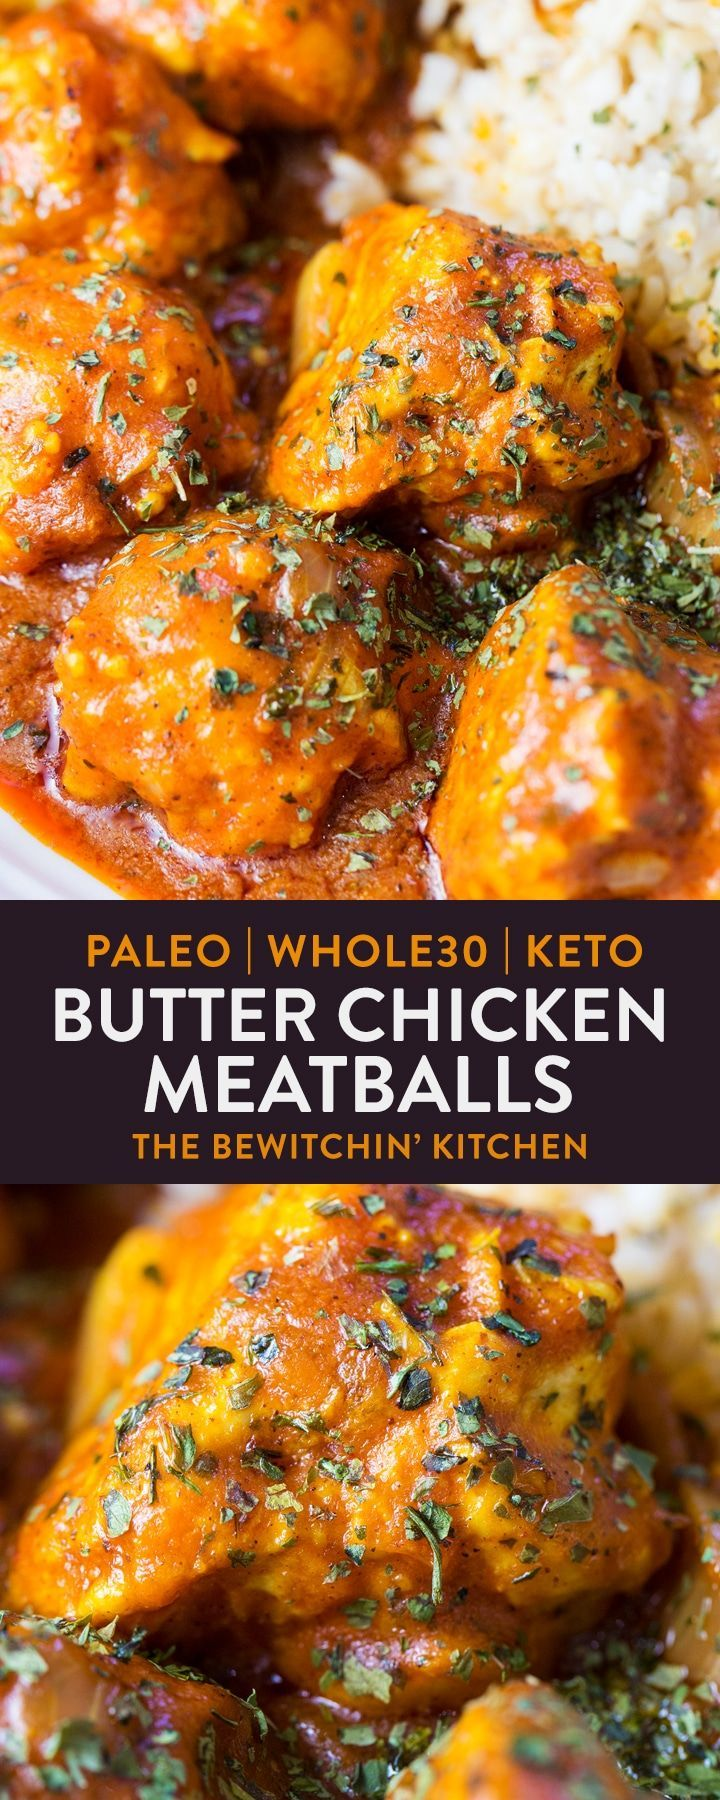 Keto Dinner Recipe - Butter Chicken Meatballs #keto